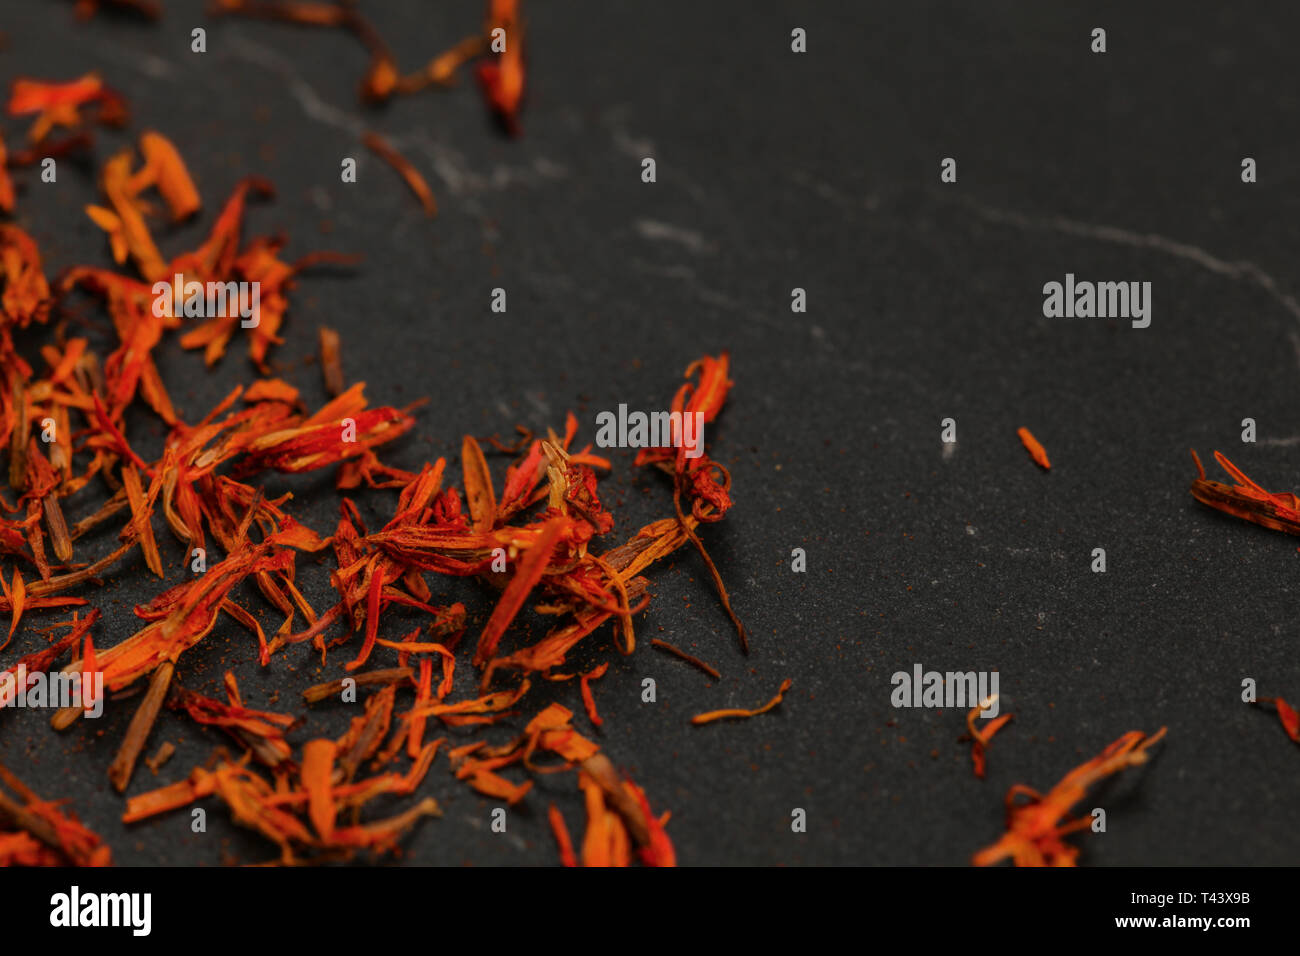 Dried orange red saffron ( Crocus sativus ) flowers on a black board. Space for text in upper right part. Stock Photo